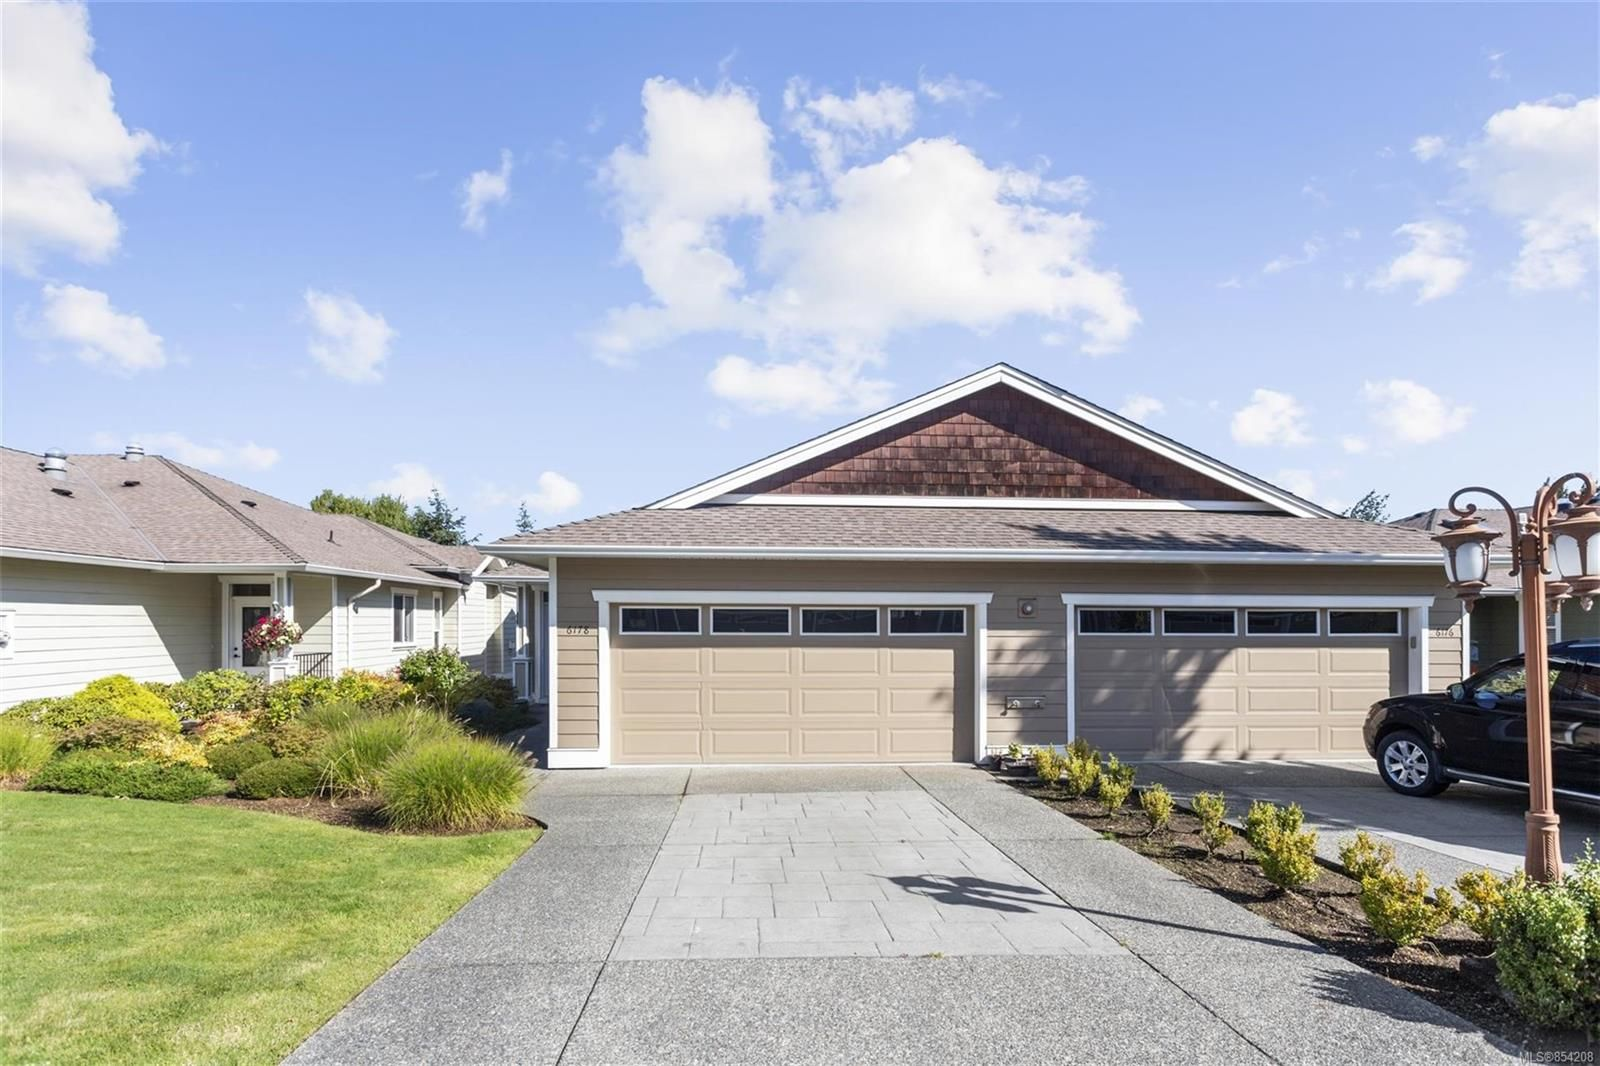 Main Photo: 6178 Arlin Pl in : Na North Nanaimo Half Duplex for sale (Nanaimo)  : MLS®# 854208